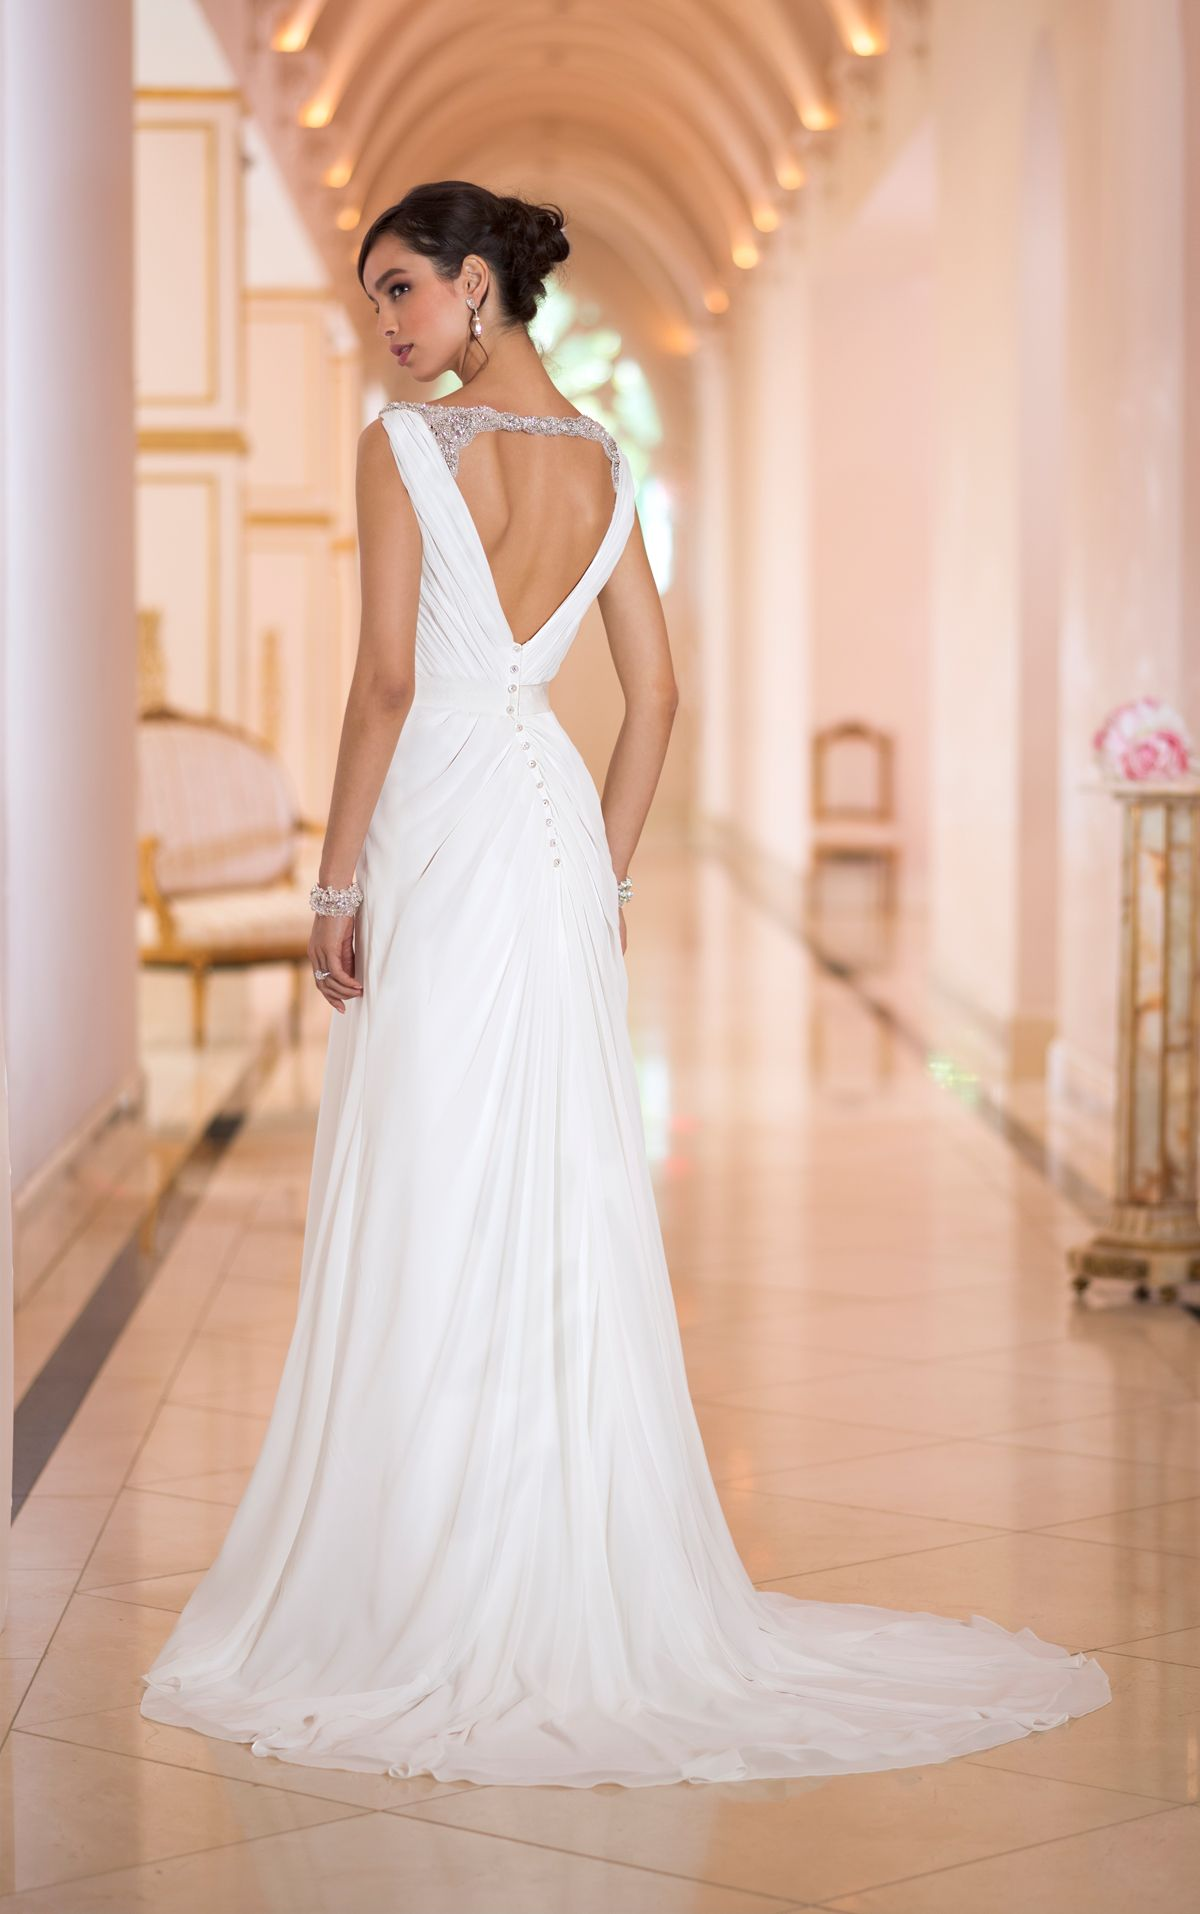 Glamorous stella york wedding dresses 2014 collection bridal wear sexy and extravagant stella york wedding dresses 2014 bridal collection junglespirit Image collections